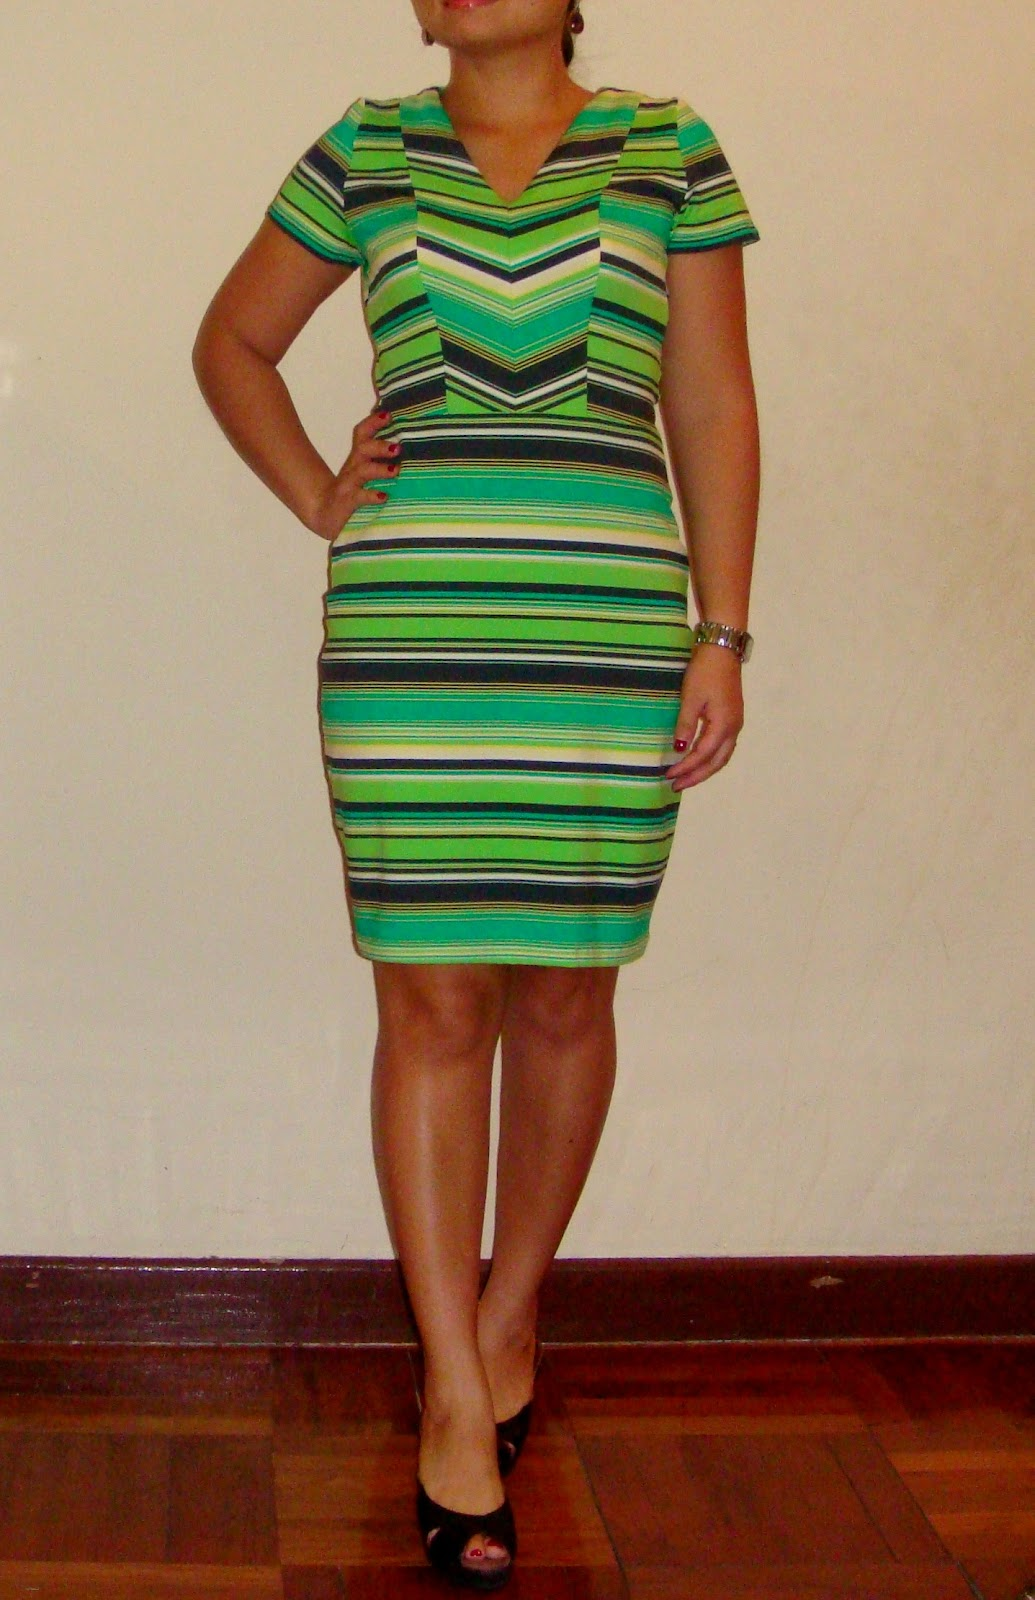 http://velvetribbonsew.blogspot.com/2012/11/striped-dress-in-jersey-knit.html